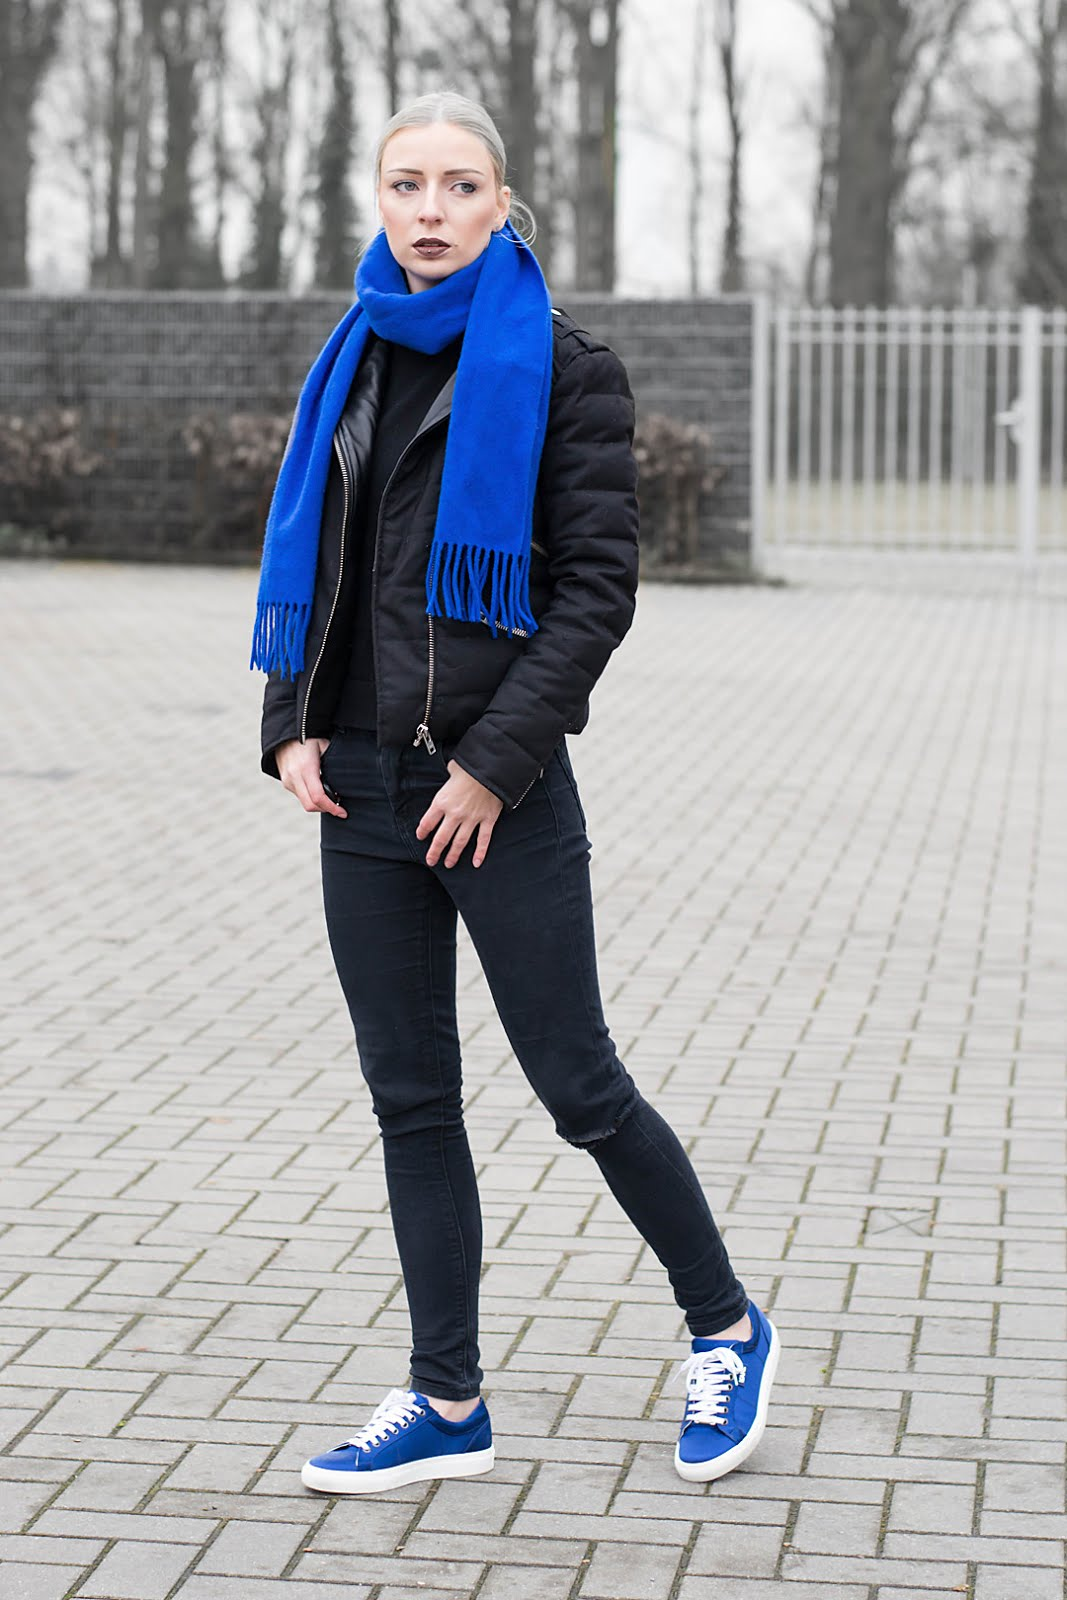 Black Outfit, cobalt blue accessoiries. Wearing karl lagerfeld sneakers and the kooples jacket